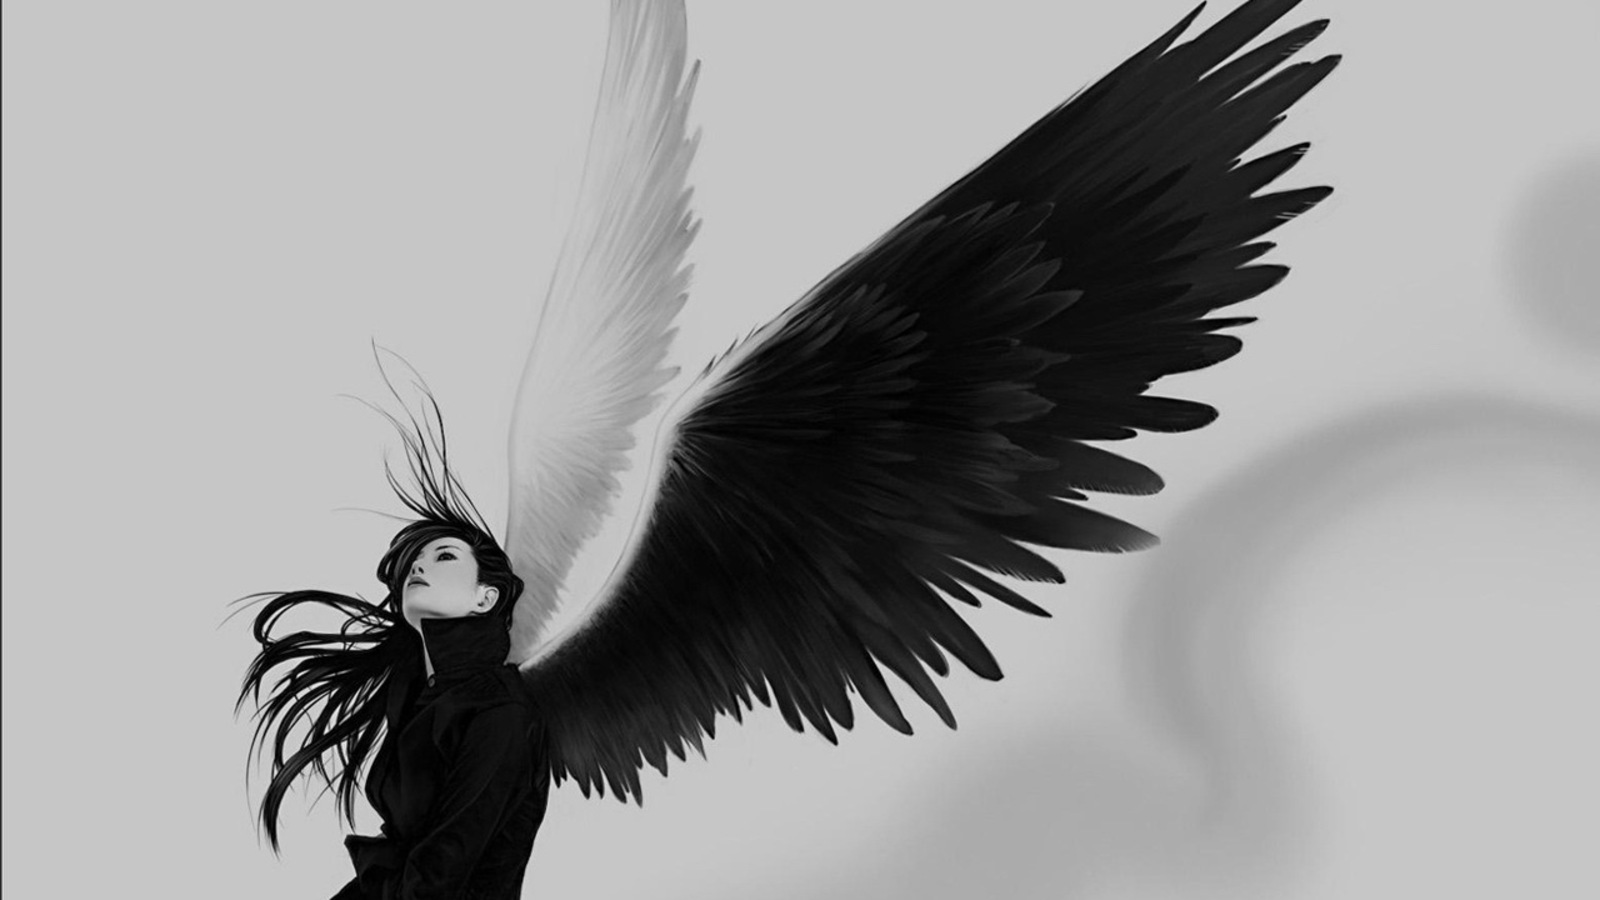 ANGEL OF GOOD & EVIL, ANGEL, BAD, BEAUTIFUL, GIRL, GOOD, WINGS, WOMAN Wallpaper